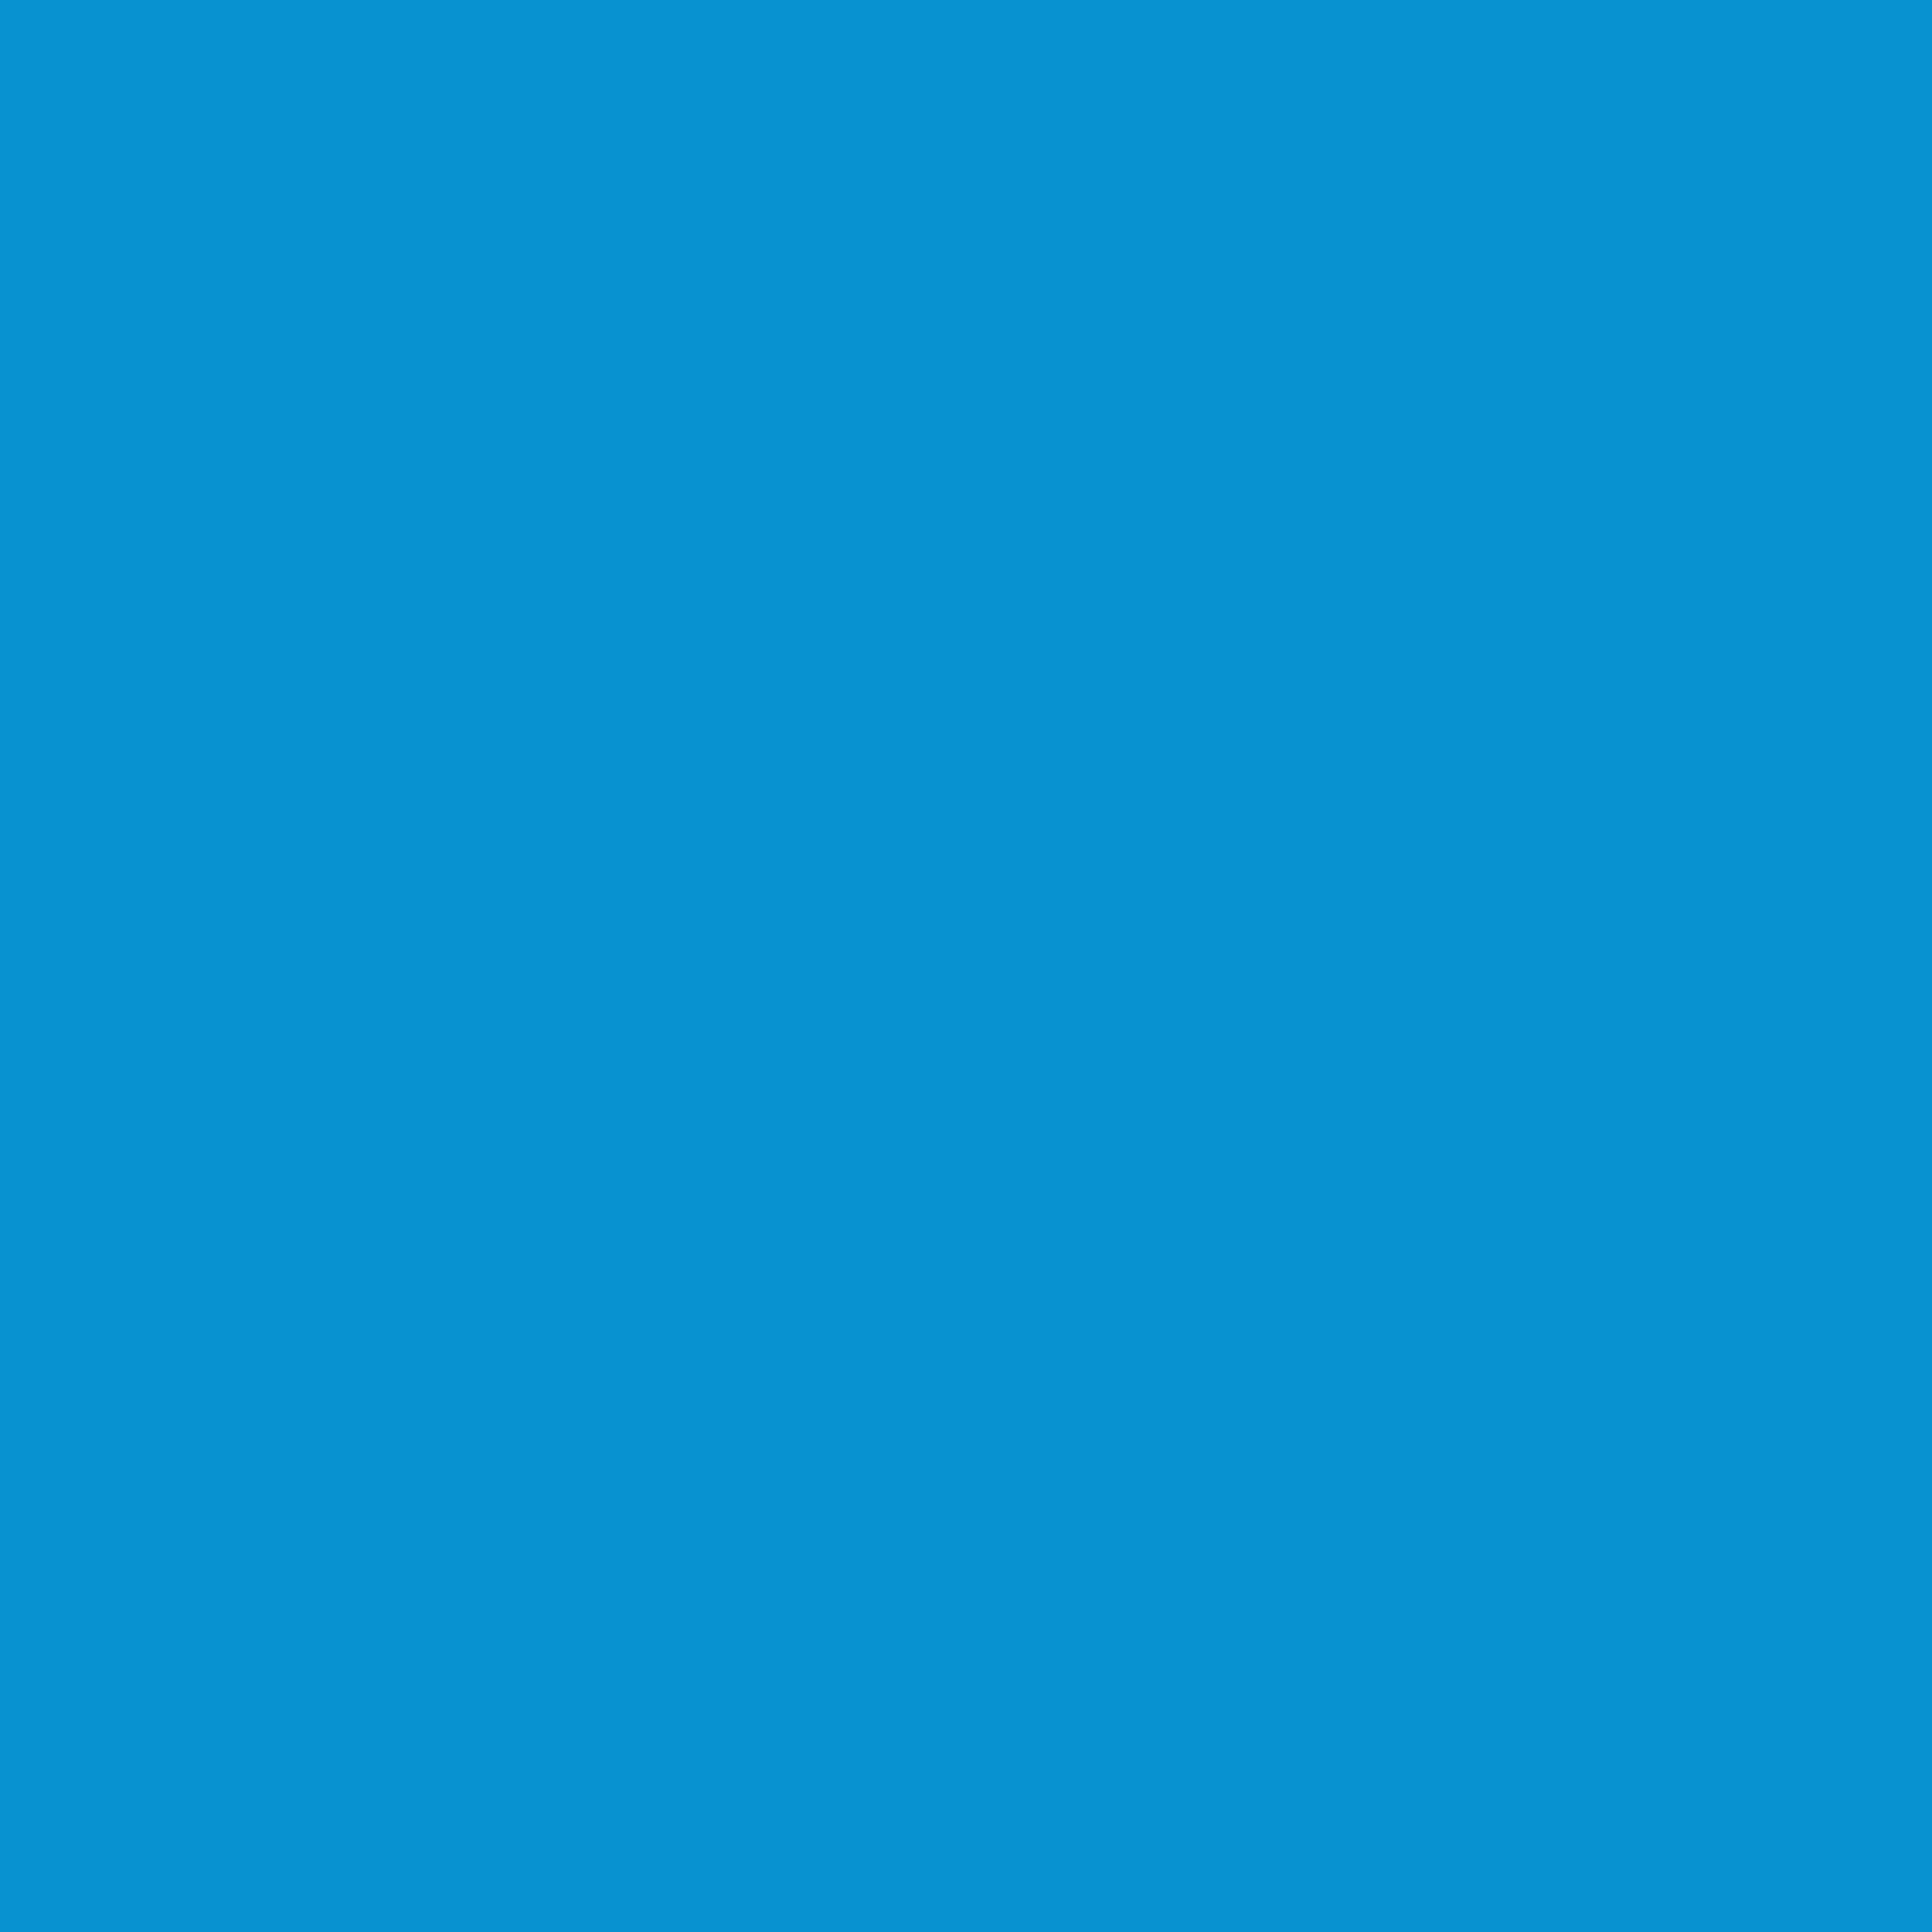 2732x2732 Rich Electric Blue Solid Color Background